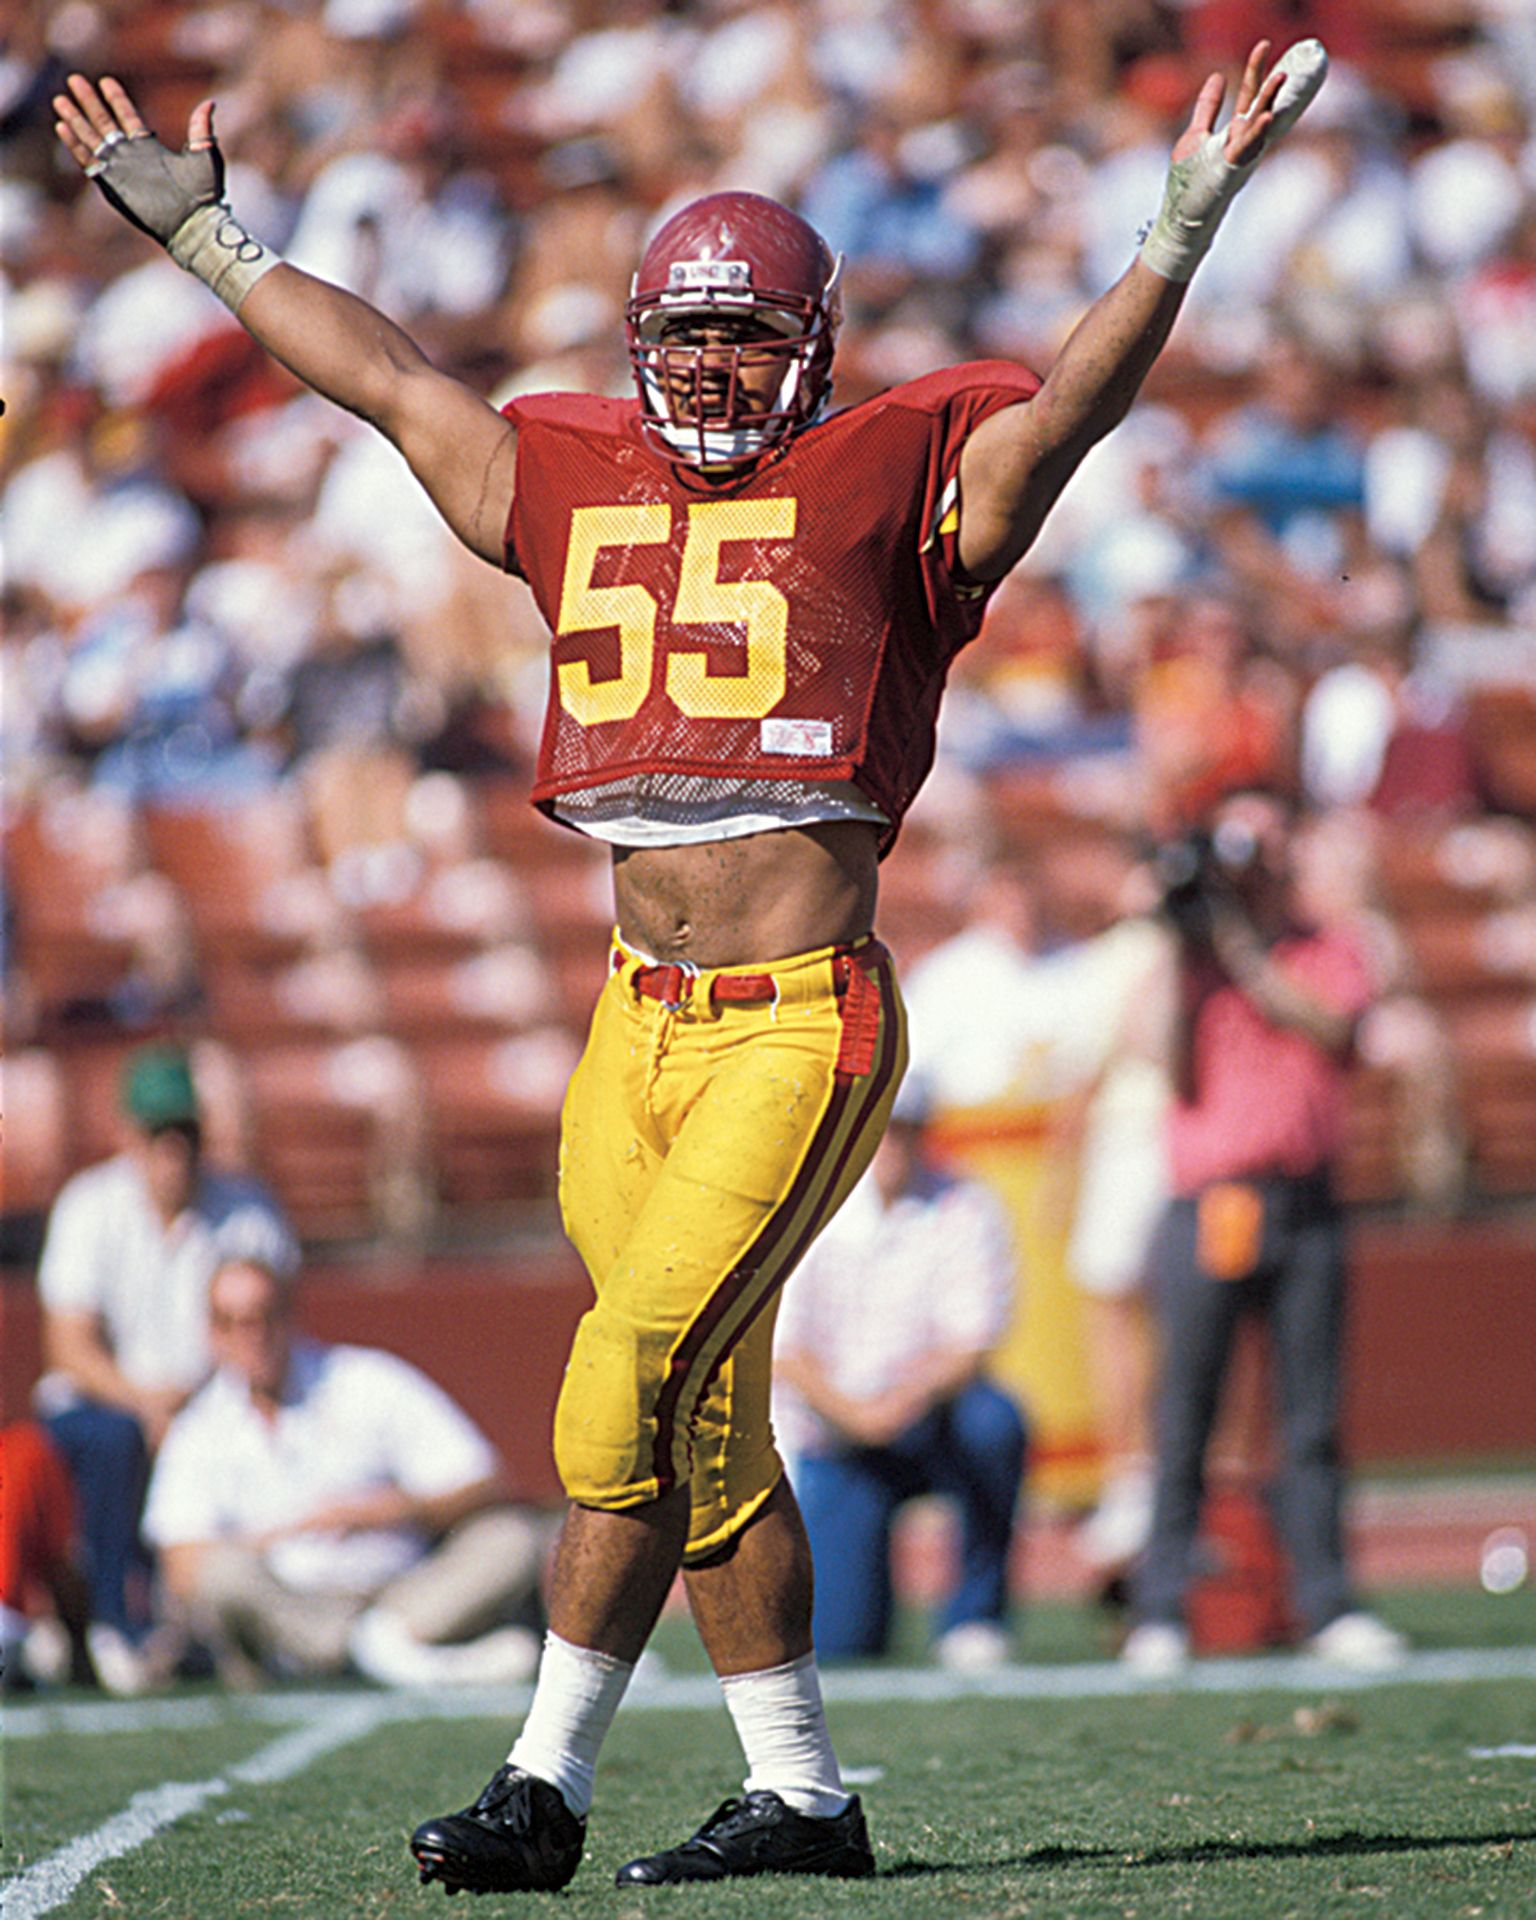 Junior seau a life in pictures college football teams